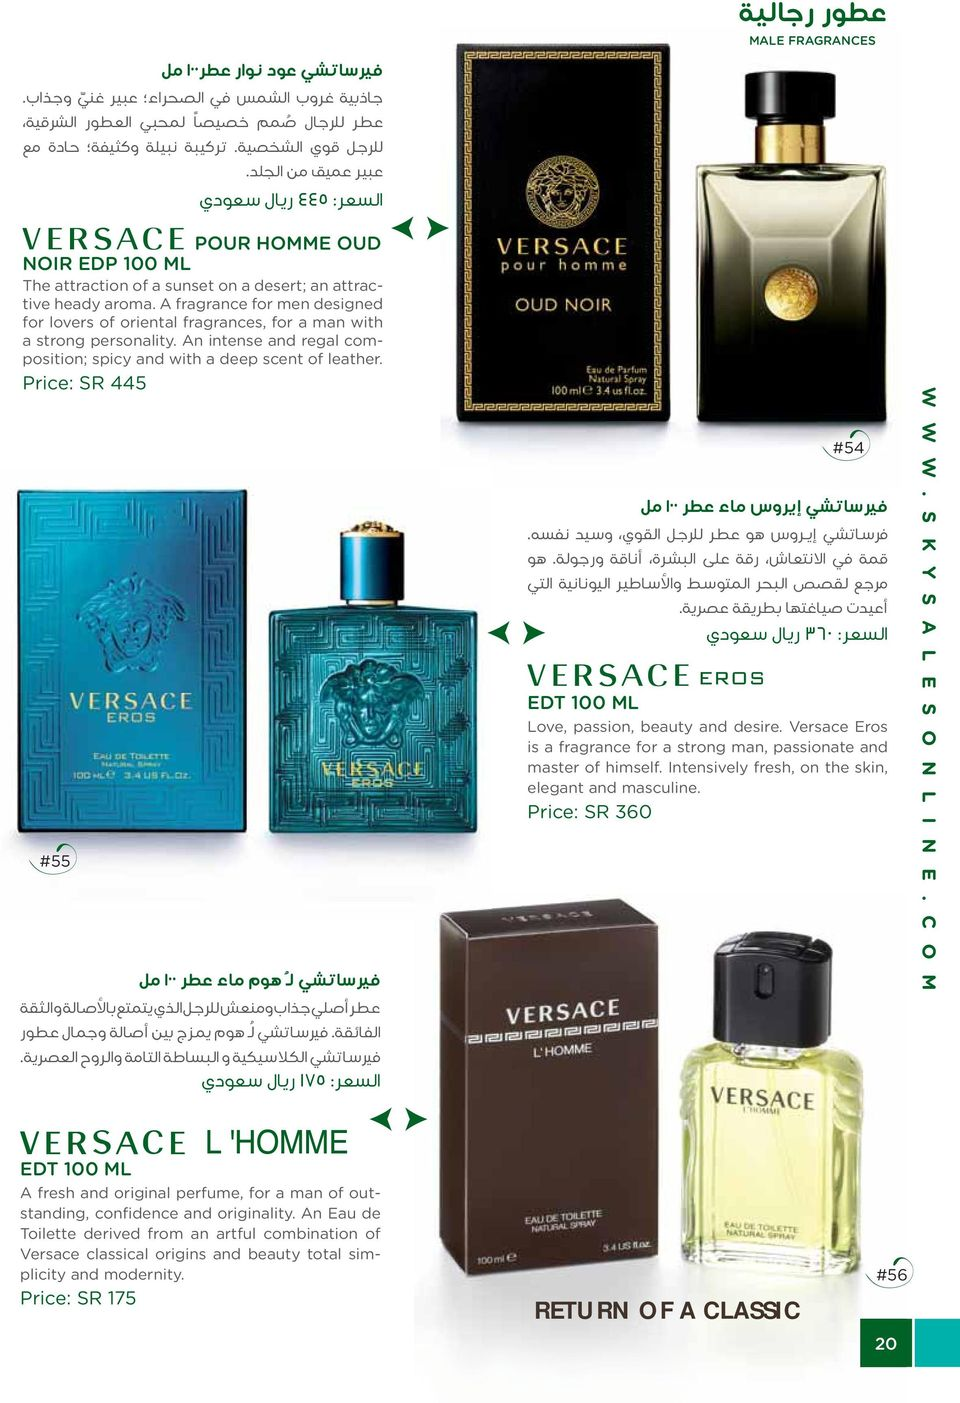 9f0a9ffde A fragrance for men designed for lovers of oriental fragrances, for a man  with a